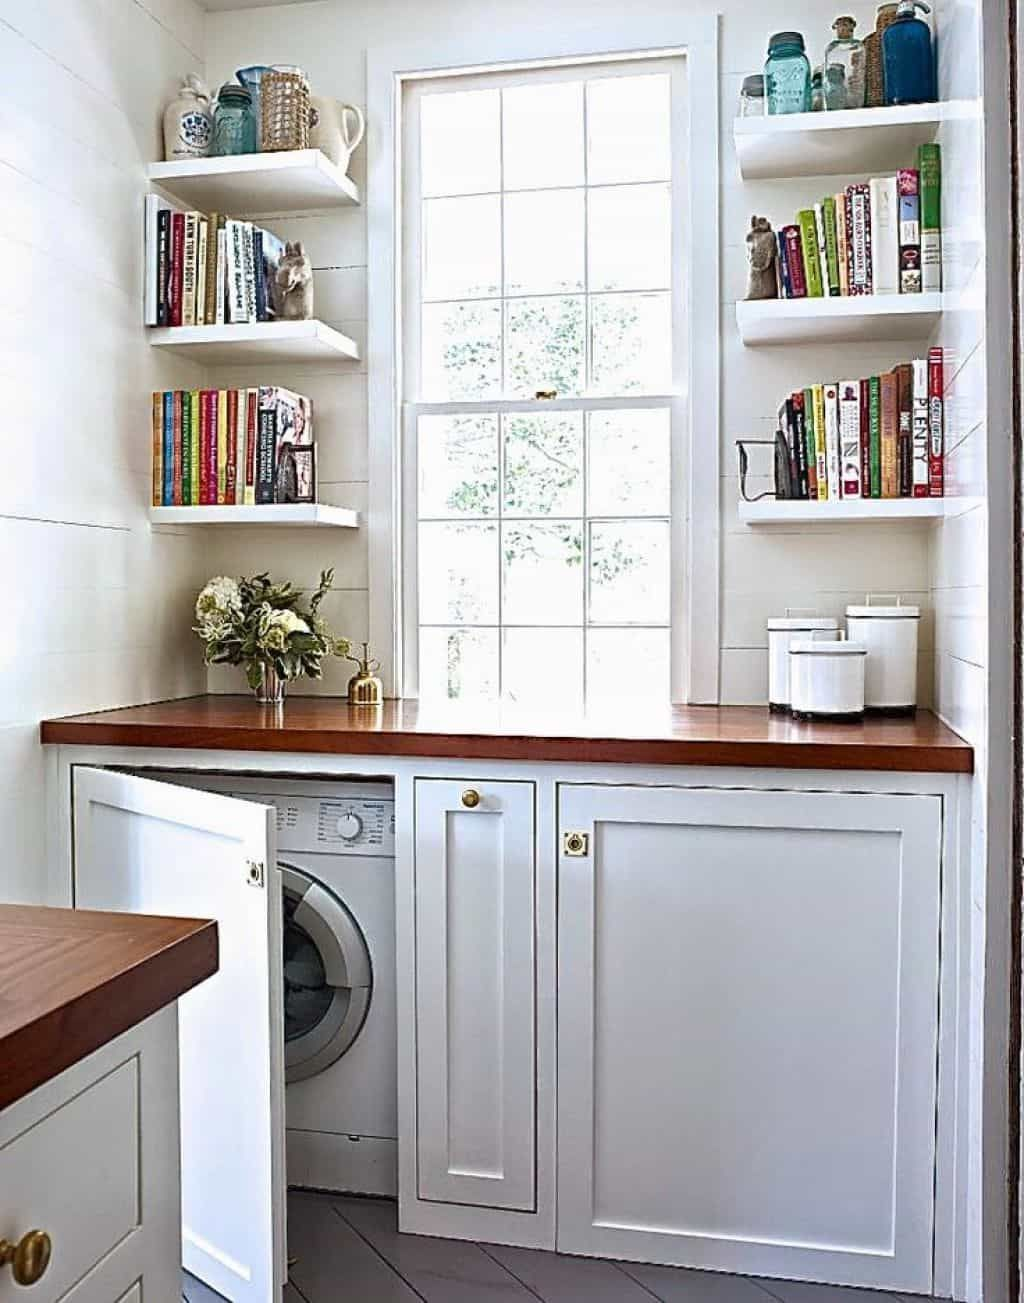 This Laundry Room Organized With Corner Wall Shelves